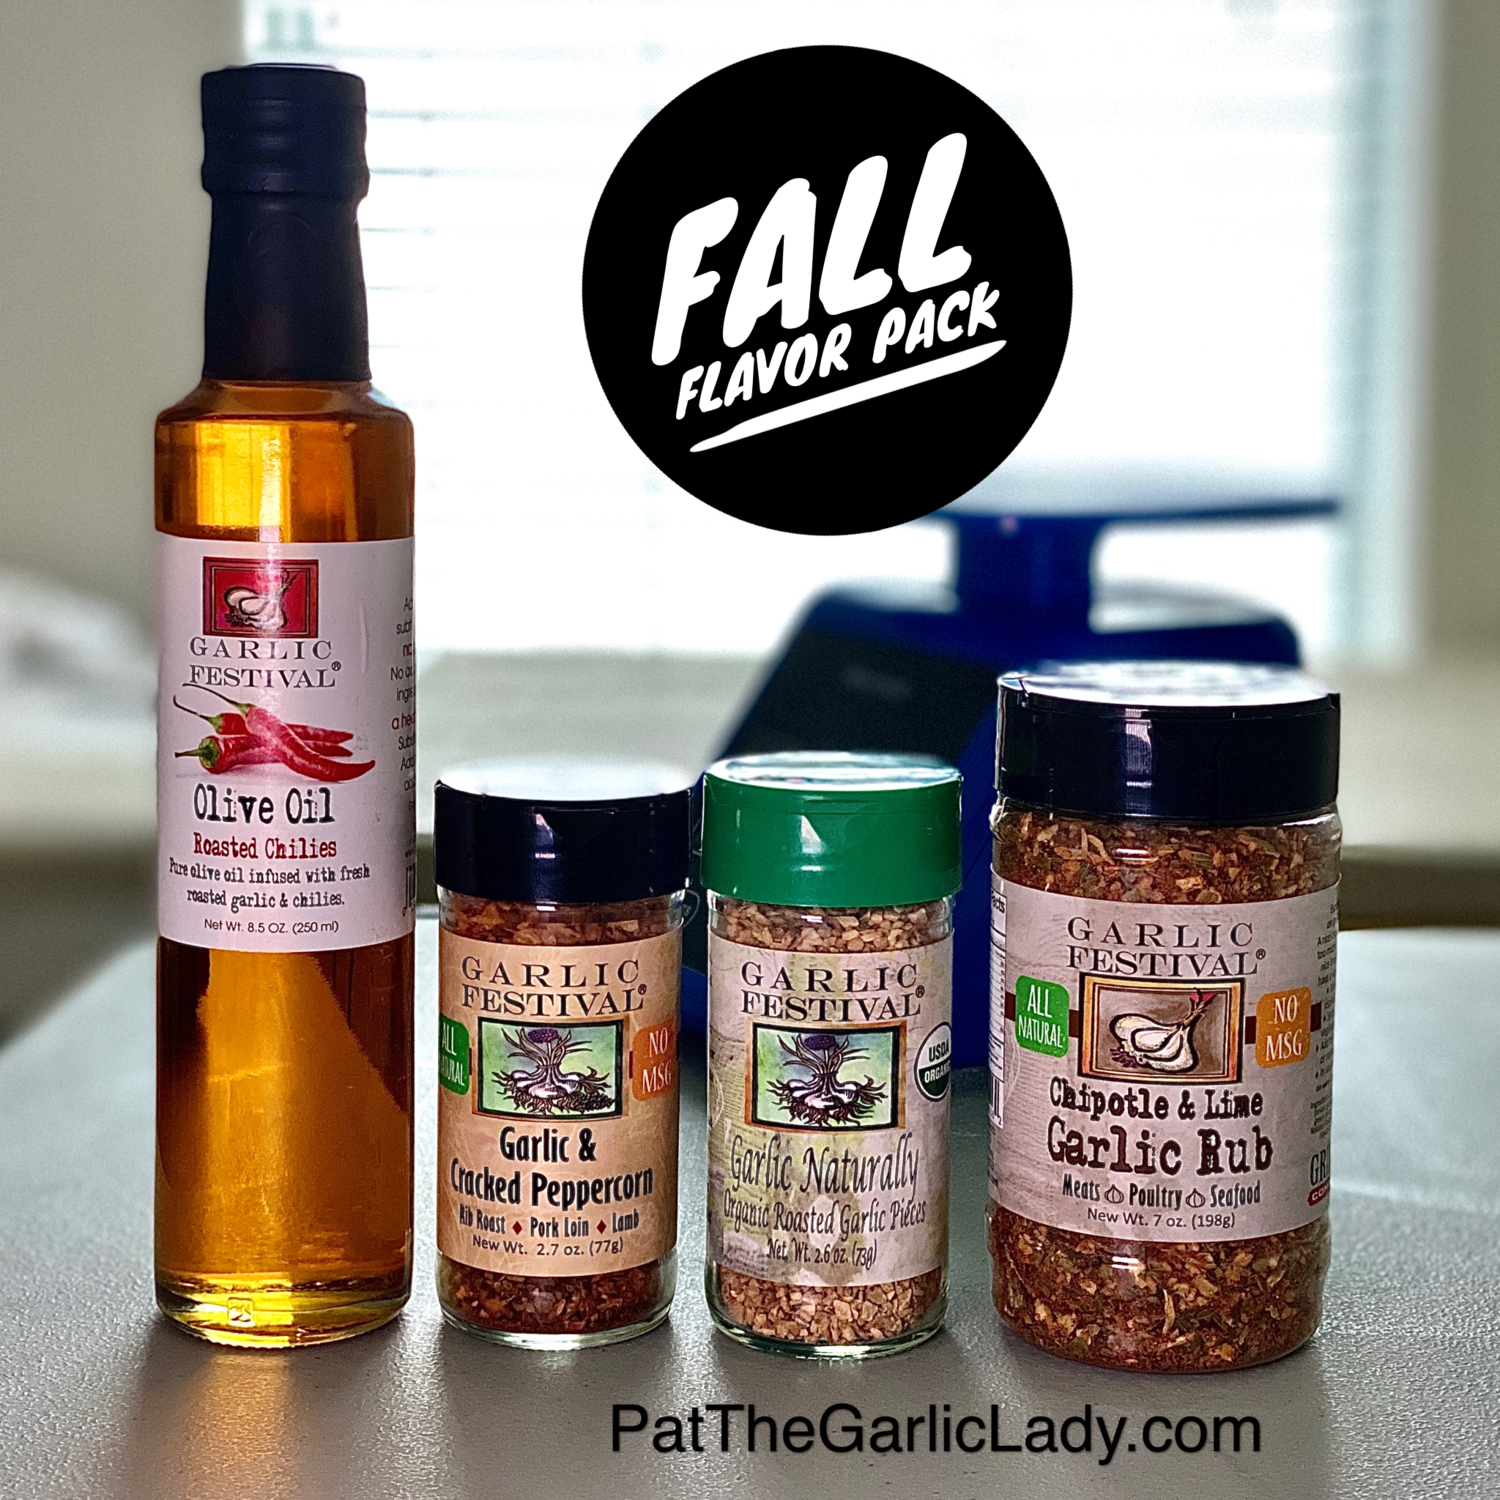 Fall Flavors Pack - $10 off Retail today. - Very Limited!